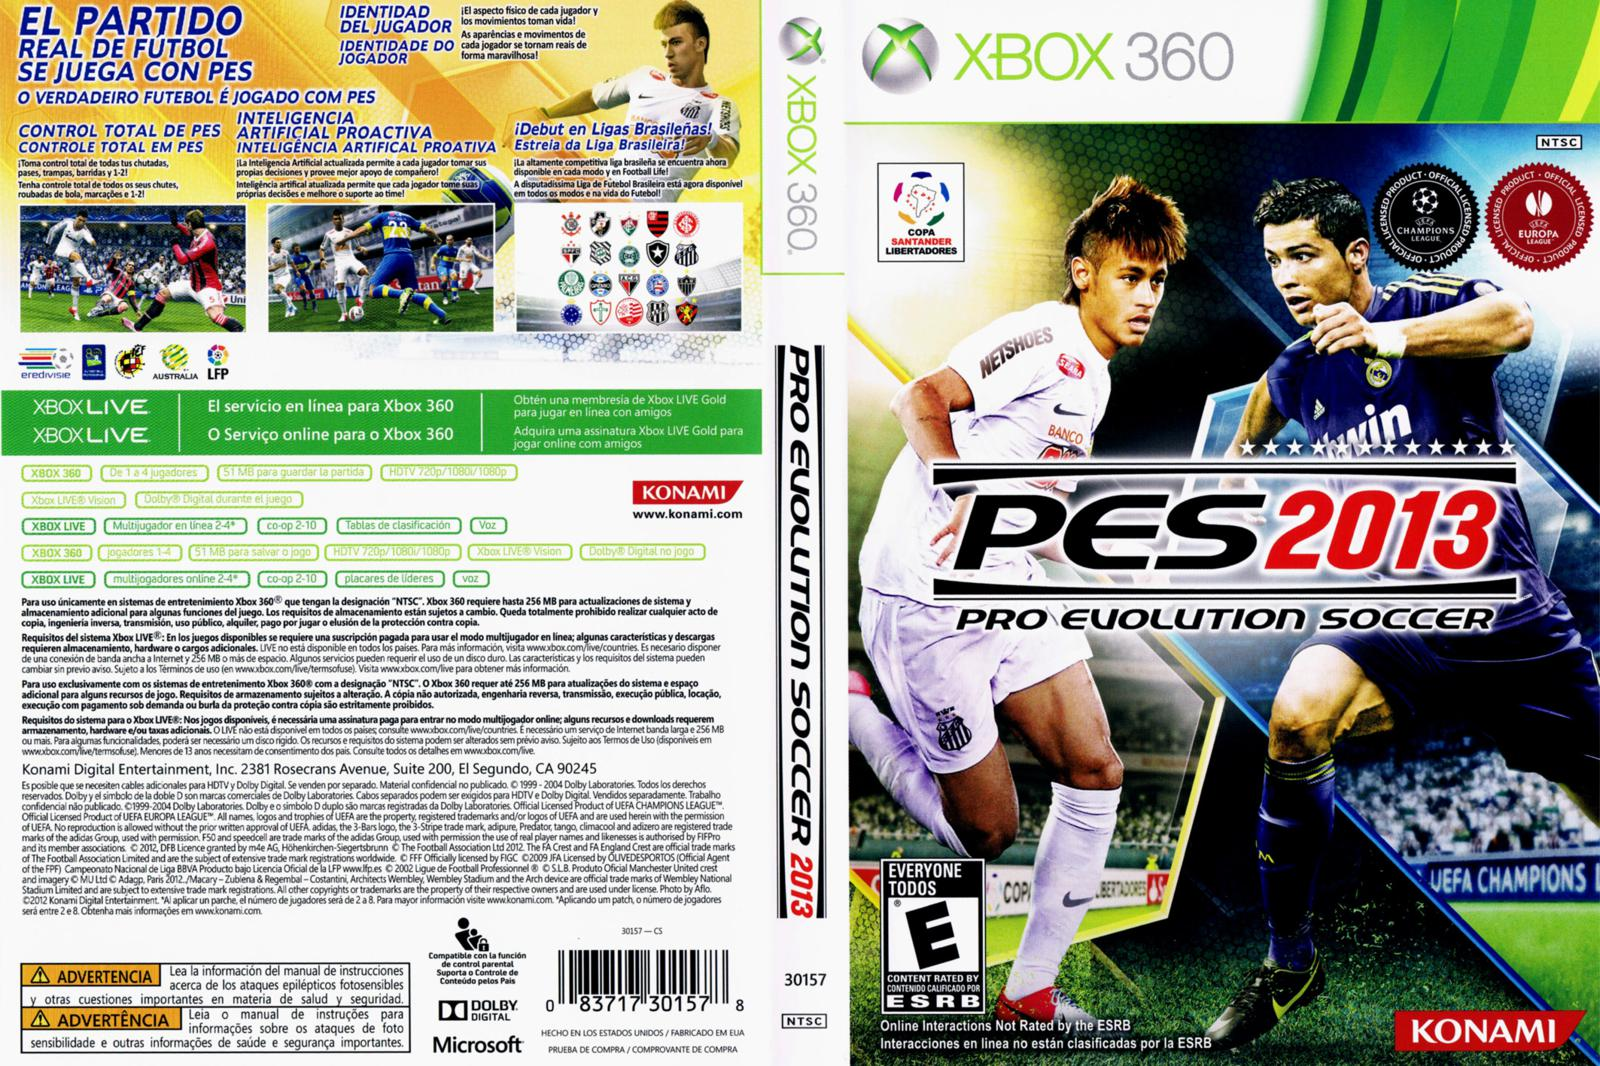 Pro Evolution Soccer 2013 - Completo (XBOX360) ~ Torrent Downs Xbox 360 Game Covers Download